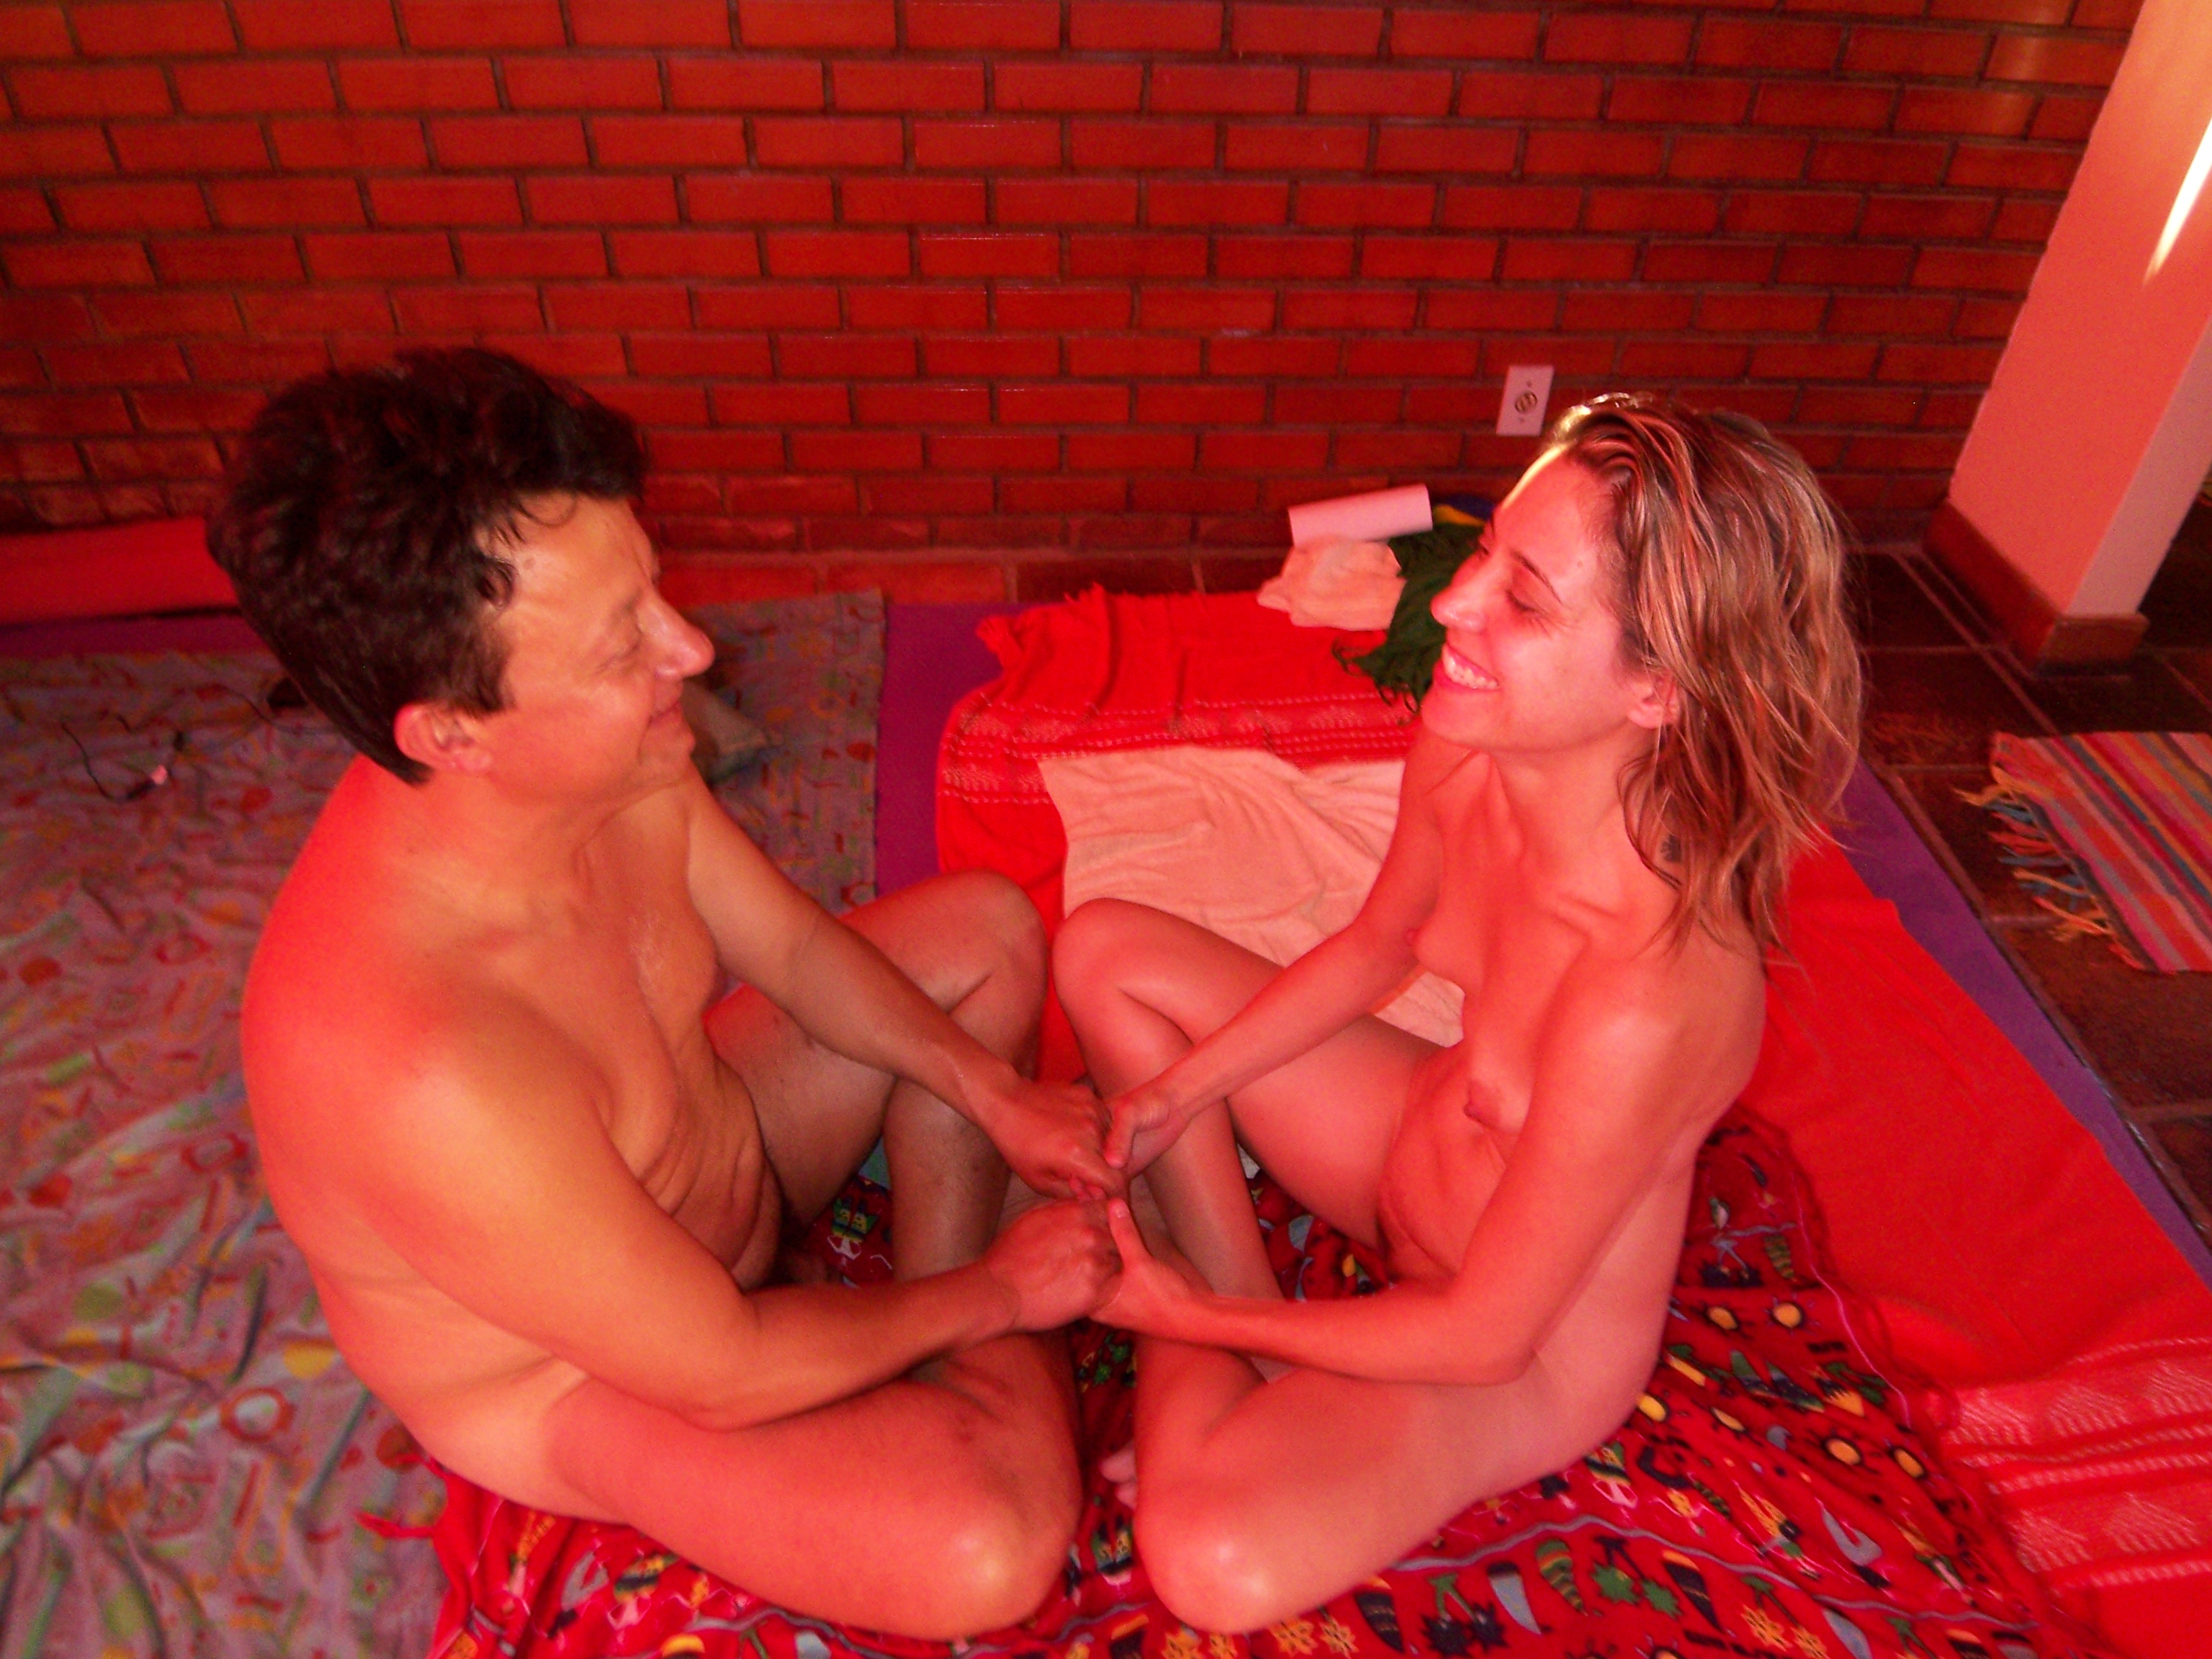 real tantra massage video nuoleminen